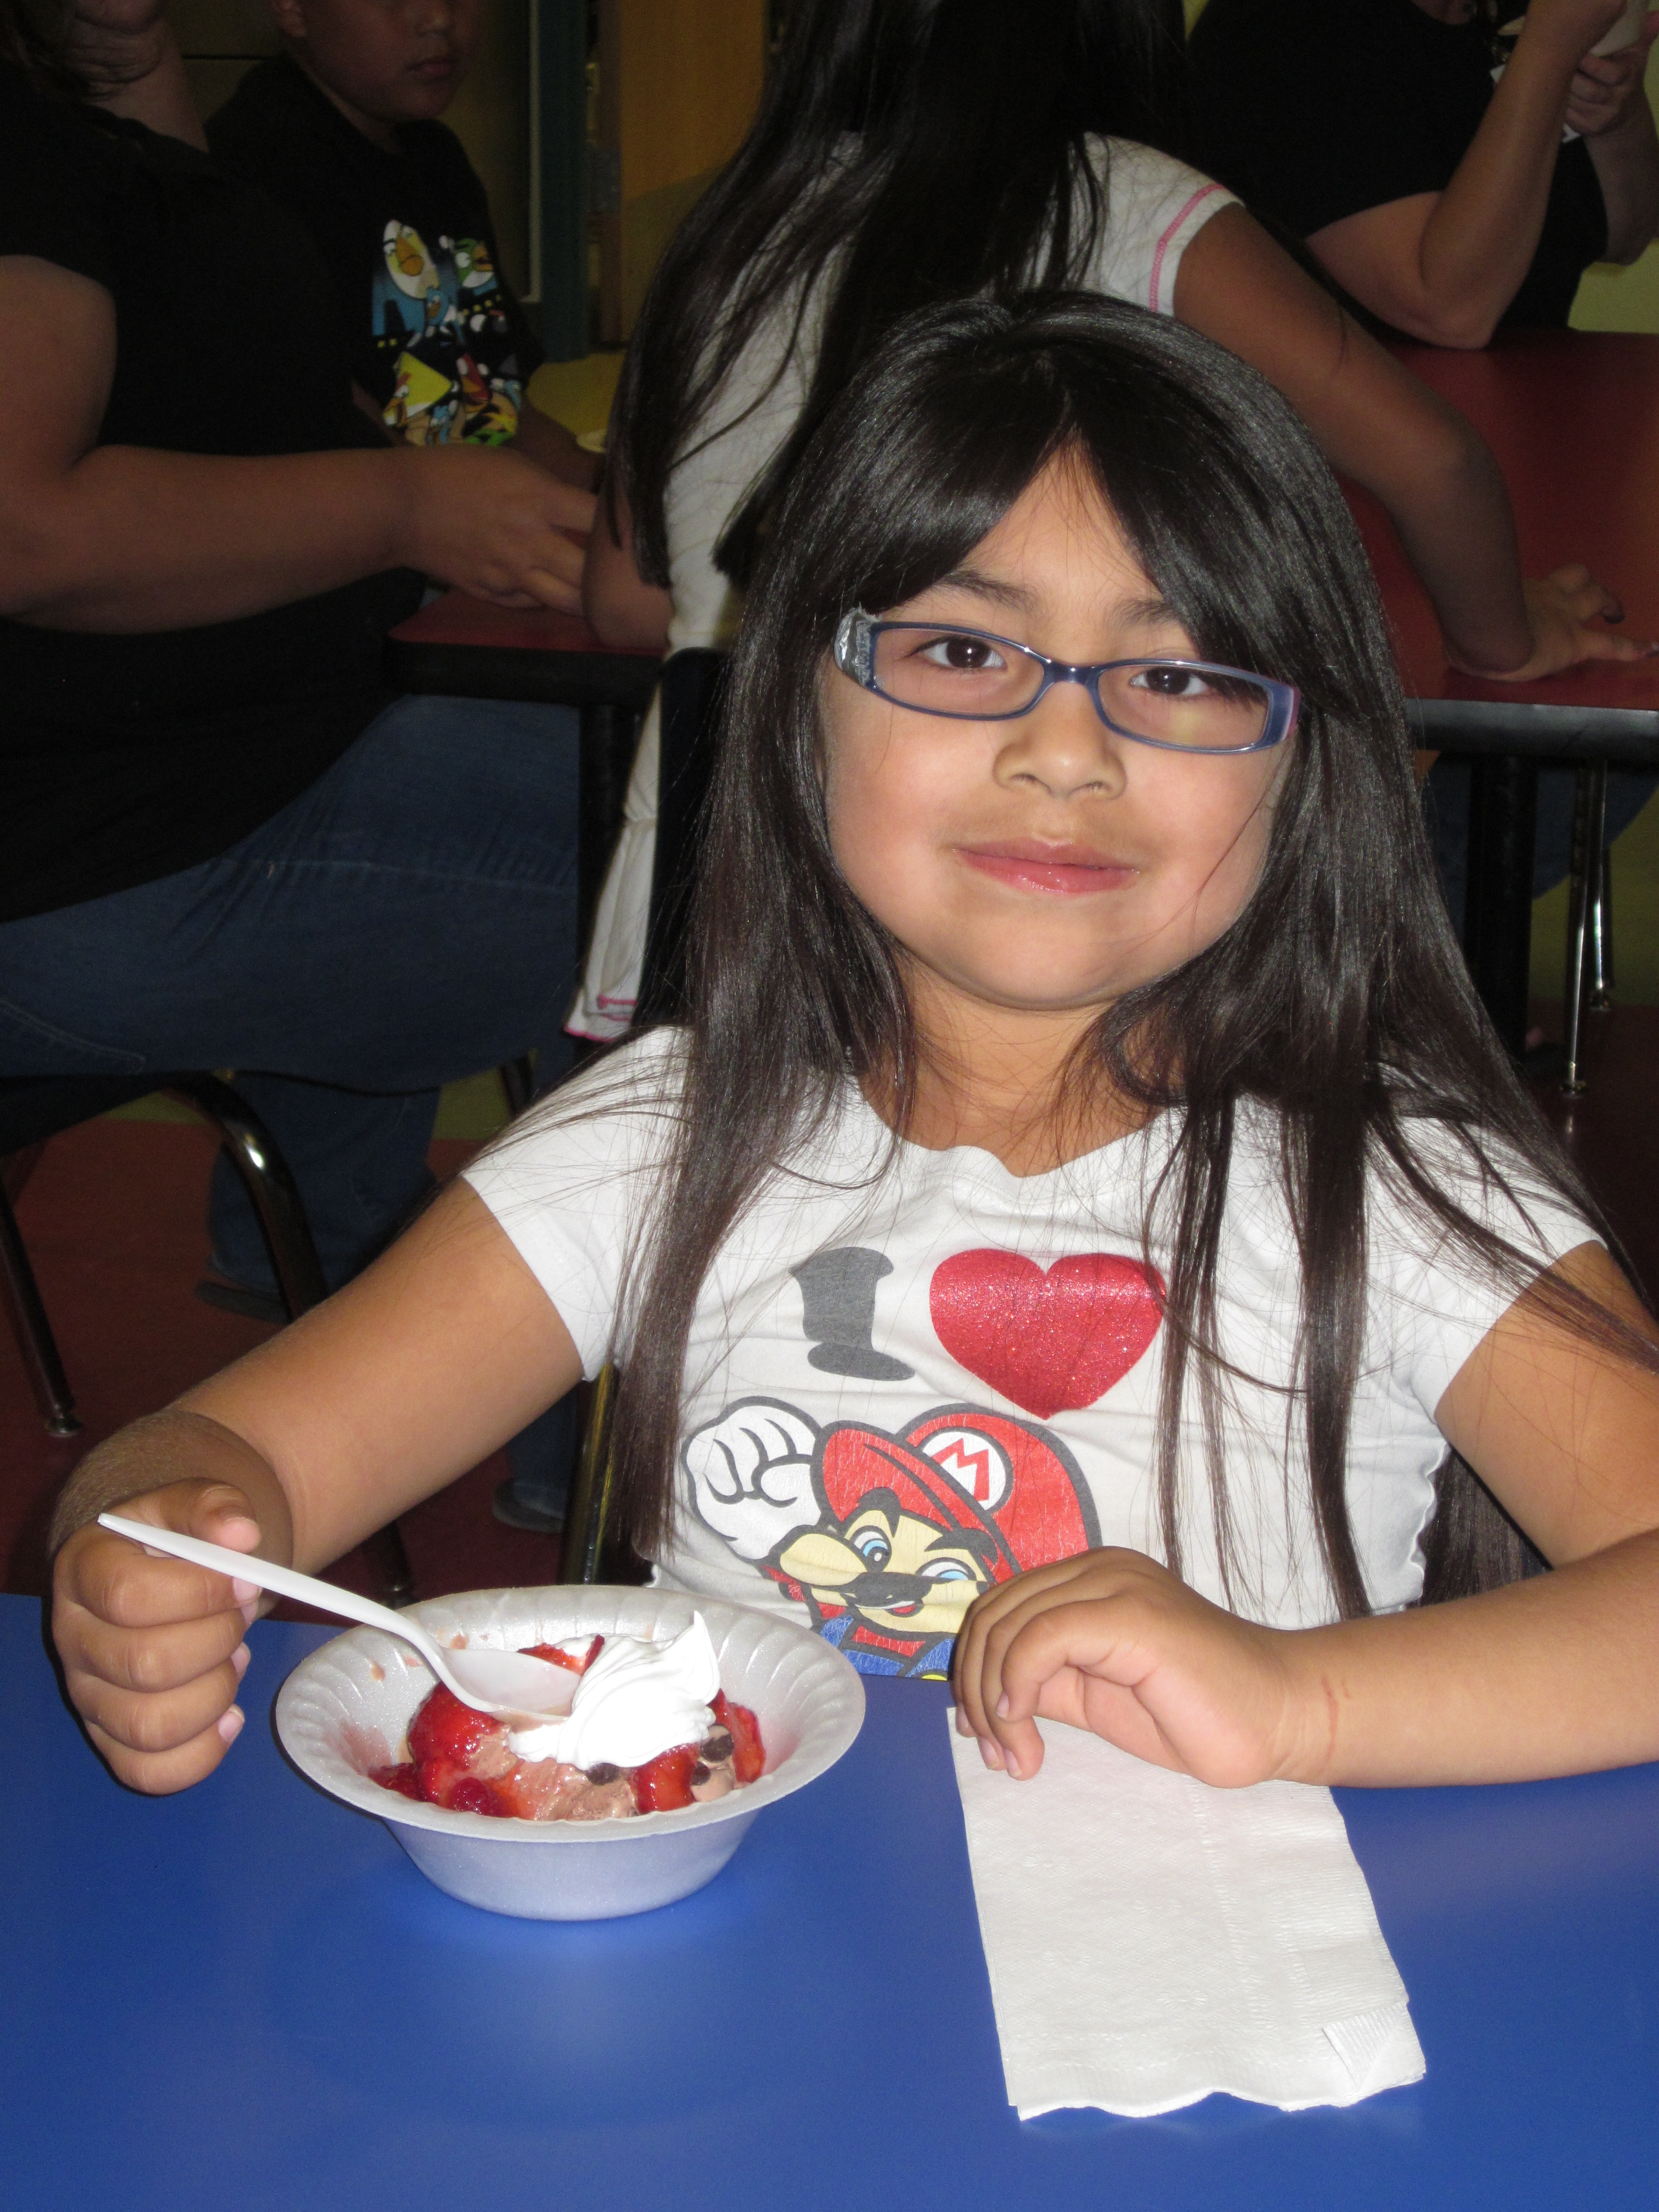 Araya Pena enjoys her personalized Ice Cream Sundae, at the Ak-Chin Child Development's Ice Cream social, which was held to Celebrate The Week of the Young Child.